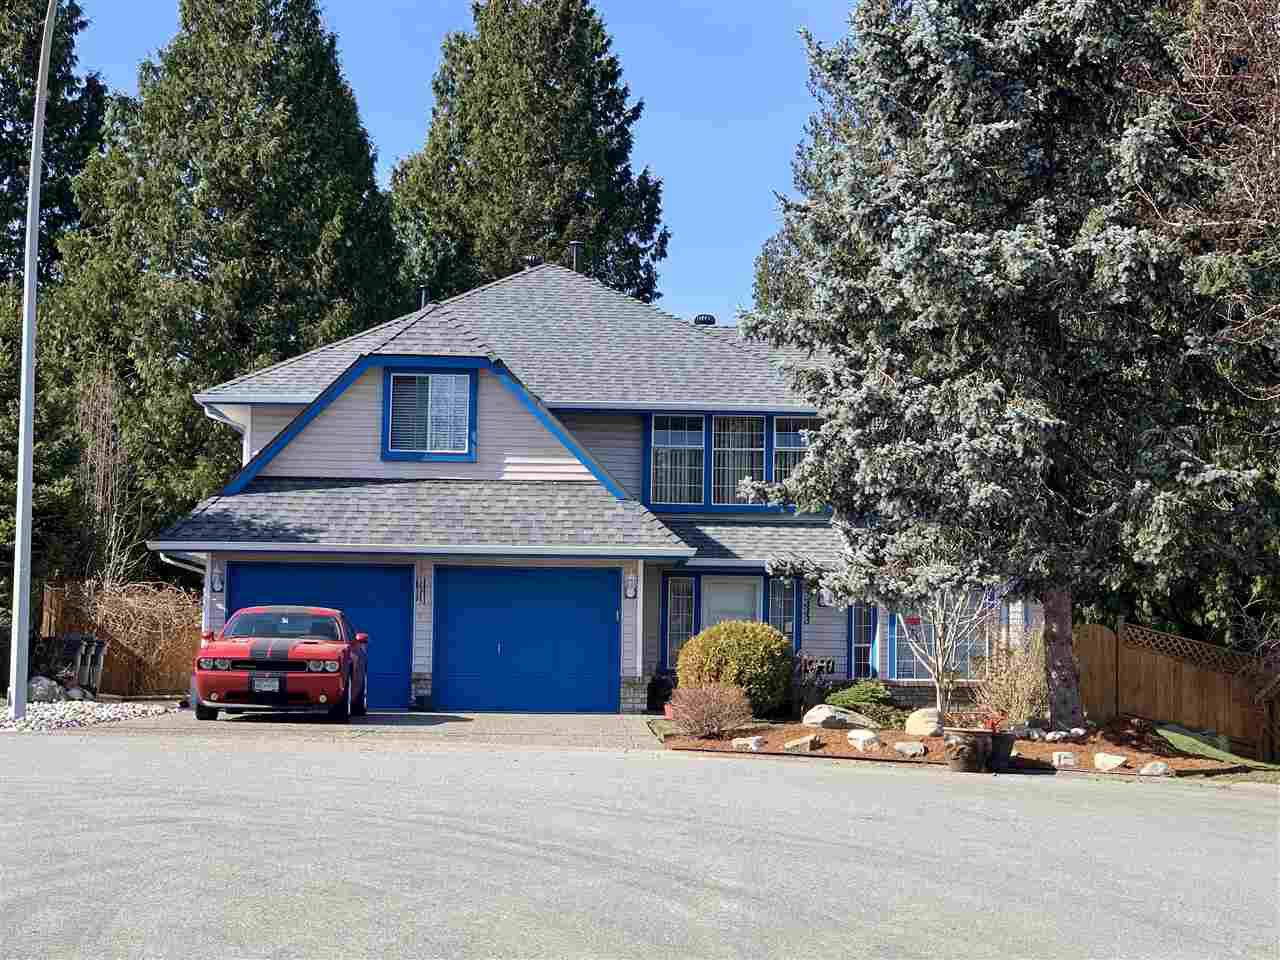 Main Photo: 13443 60A Avenue in Surrey: Panorama Ridge House for sale : MLS®# R2350665